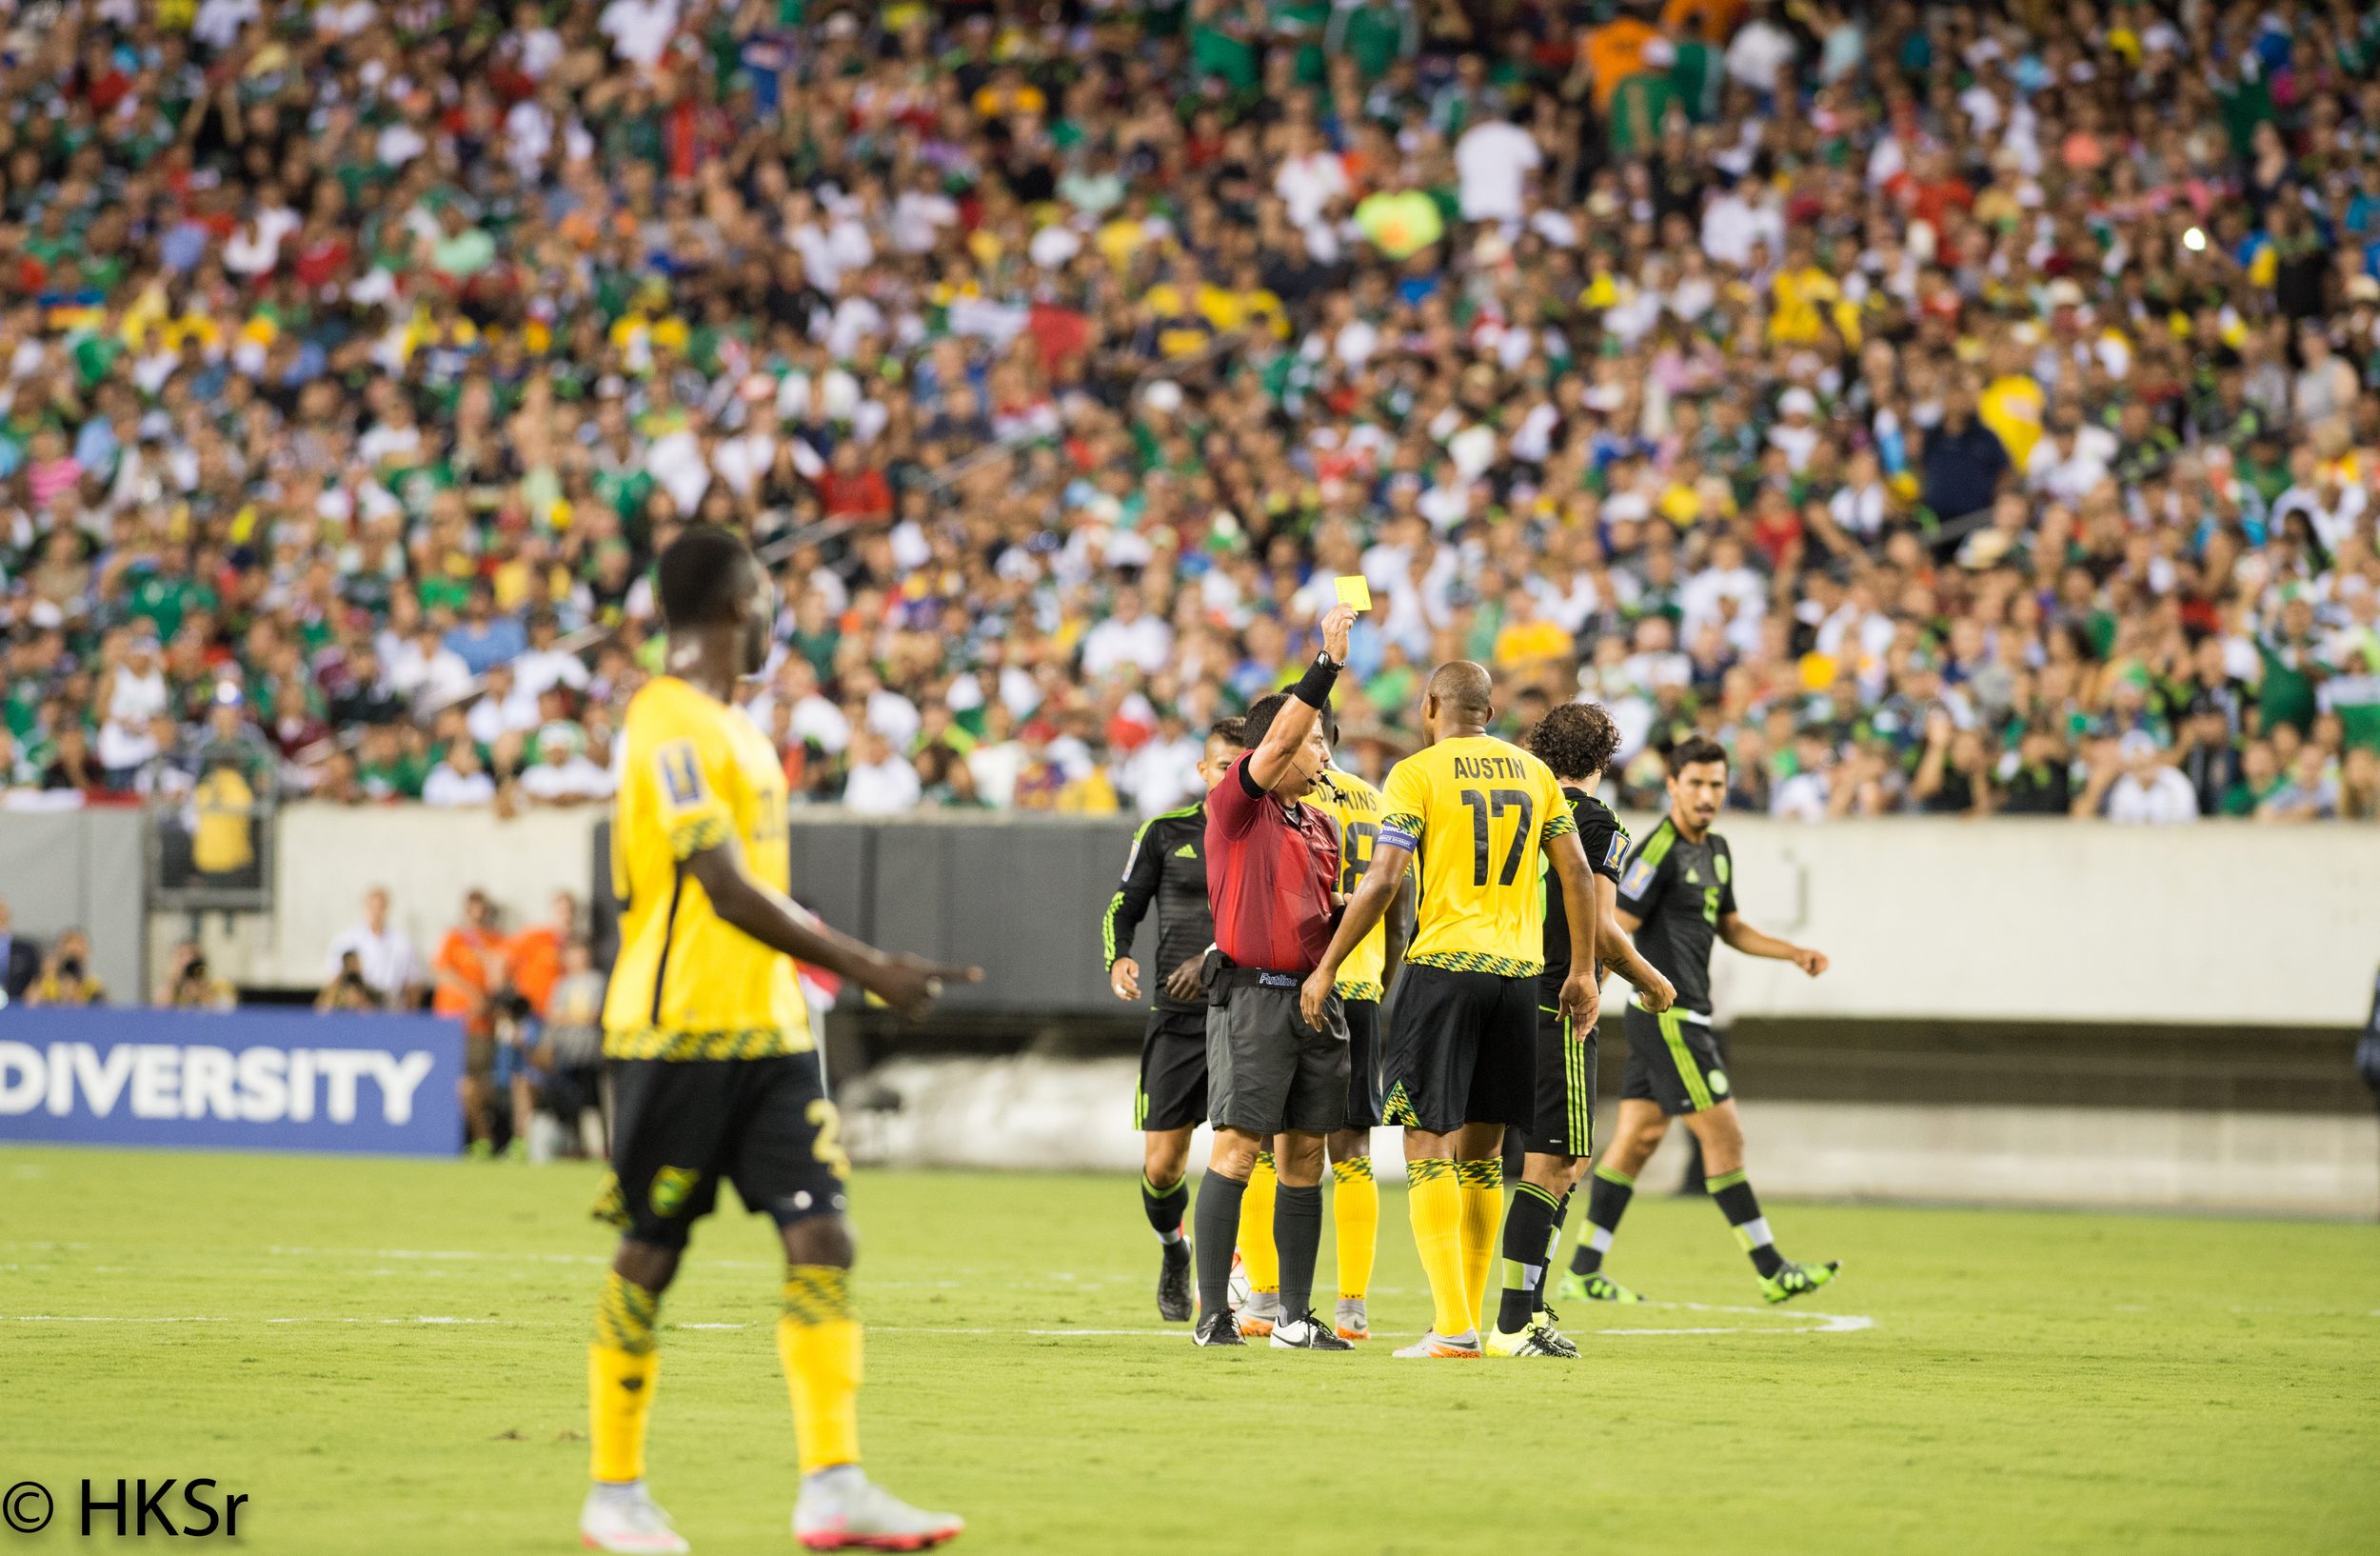 Yellow card given to Jamaica player#17 Rodolph Austin